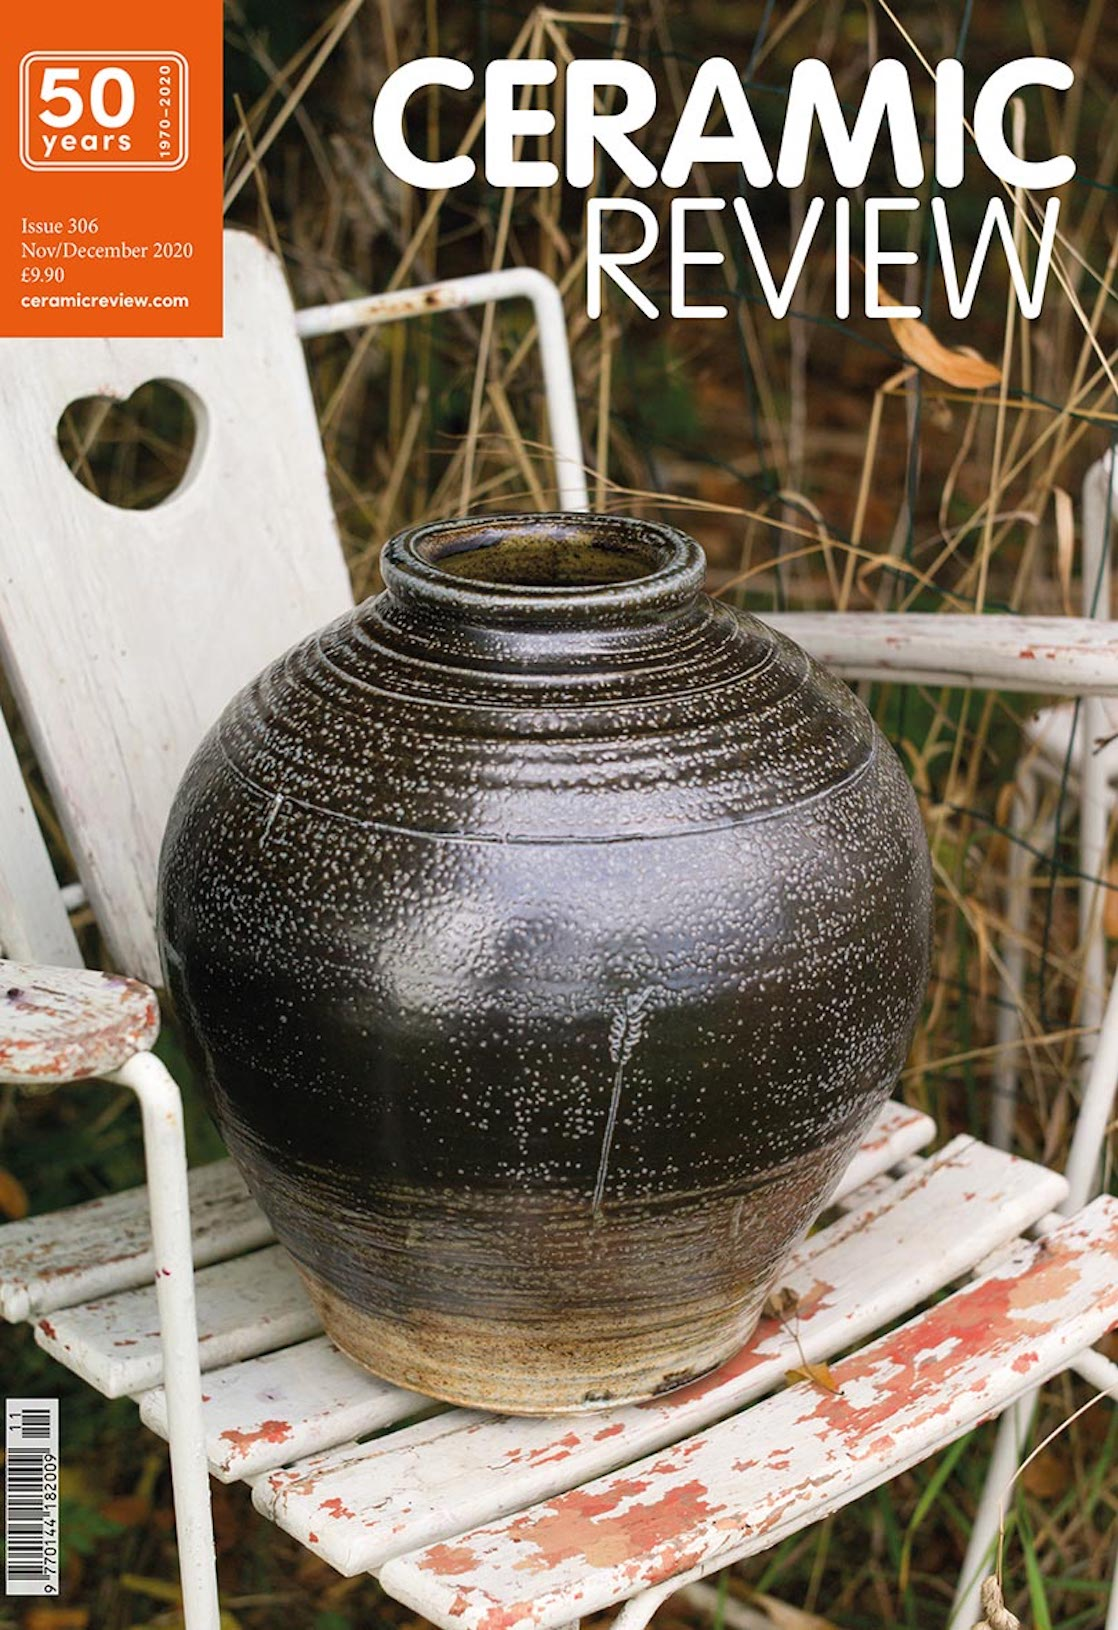 Issue 306 of Ceramic Review